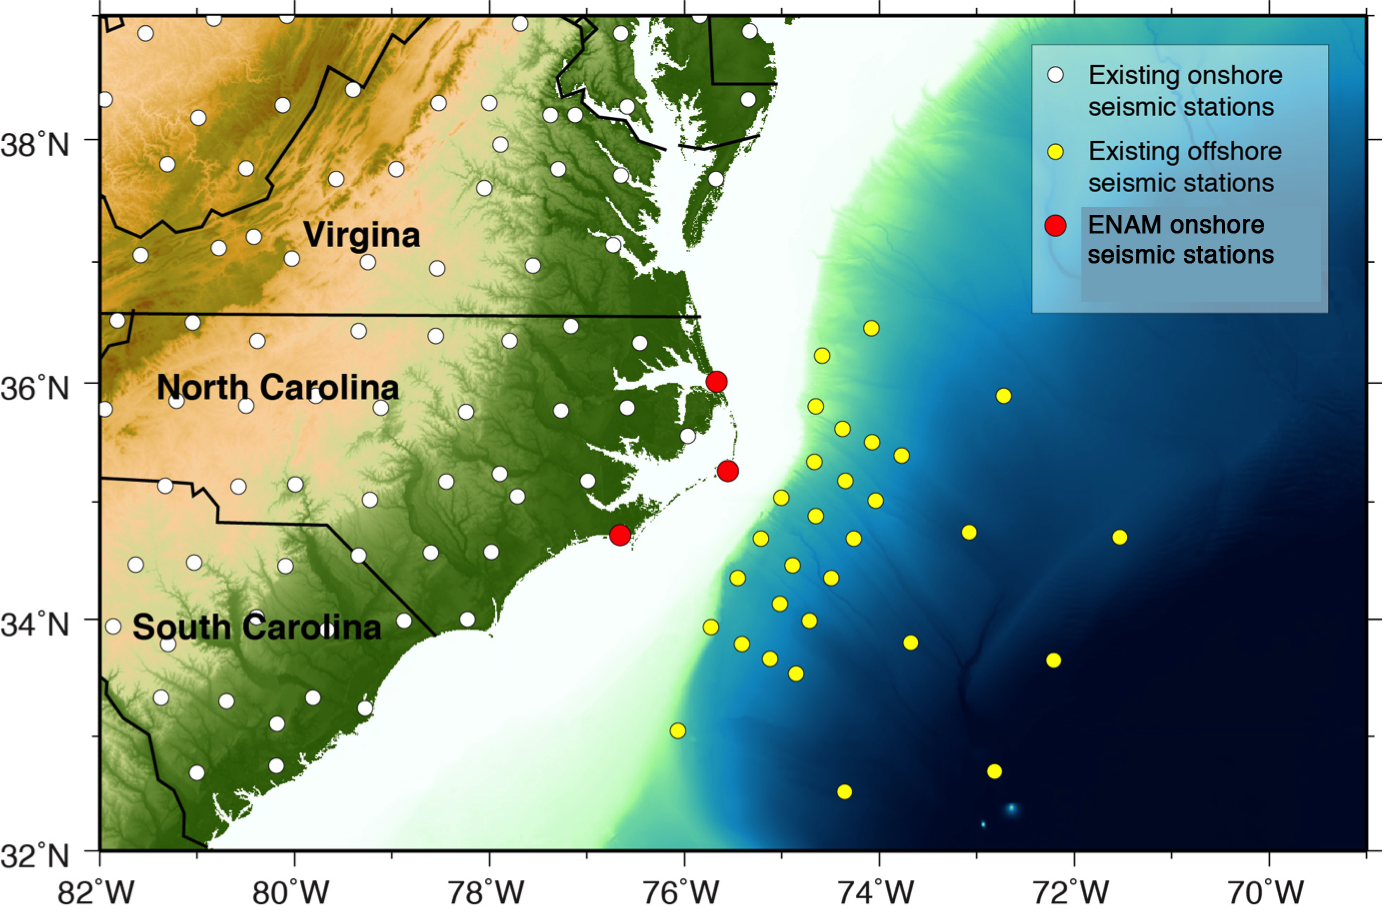 map showing the locations of existing usarray seismic stations white enam offshore seismic stations yellow and enam onshore seismic stations red